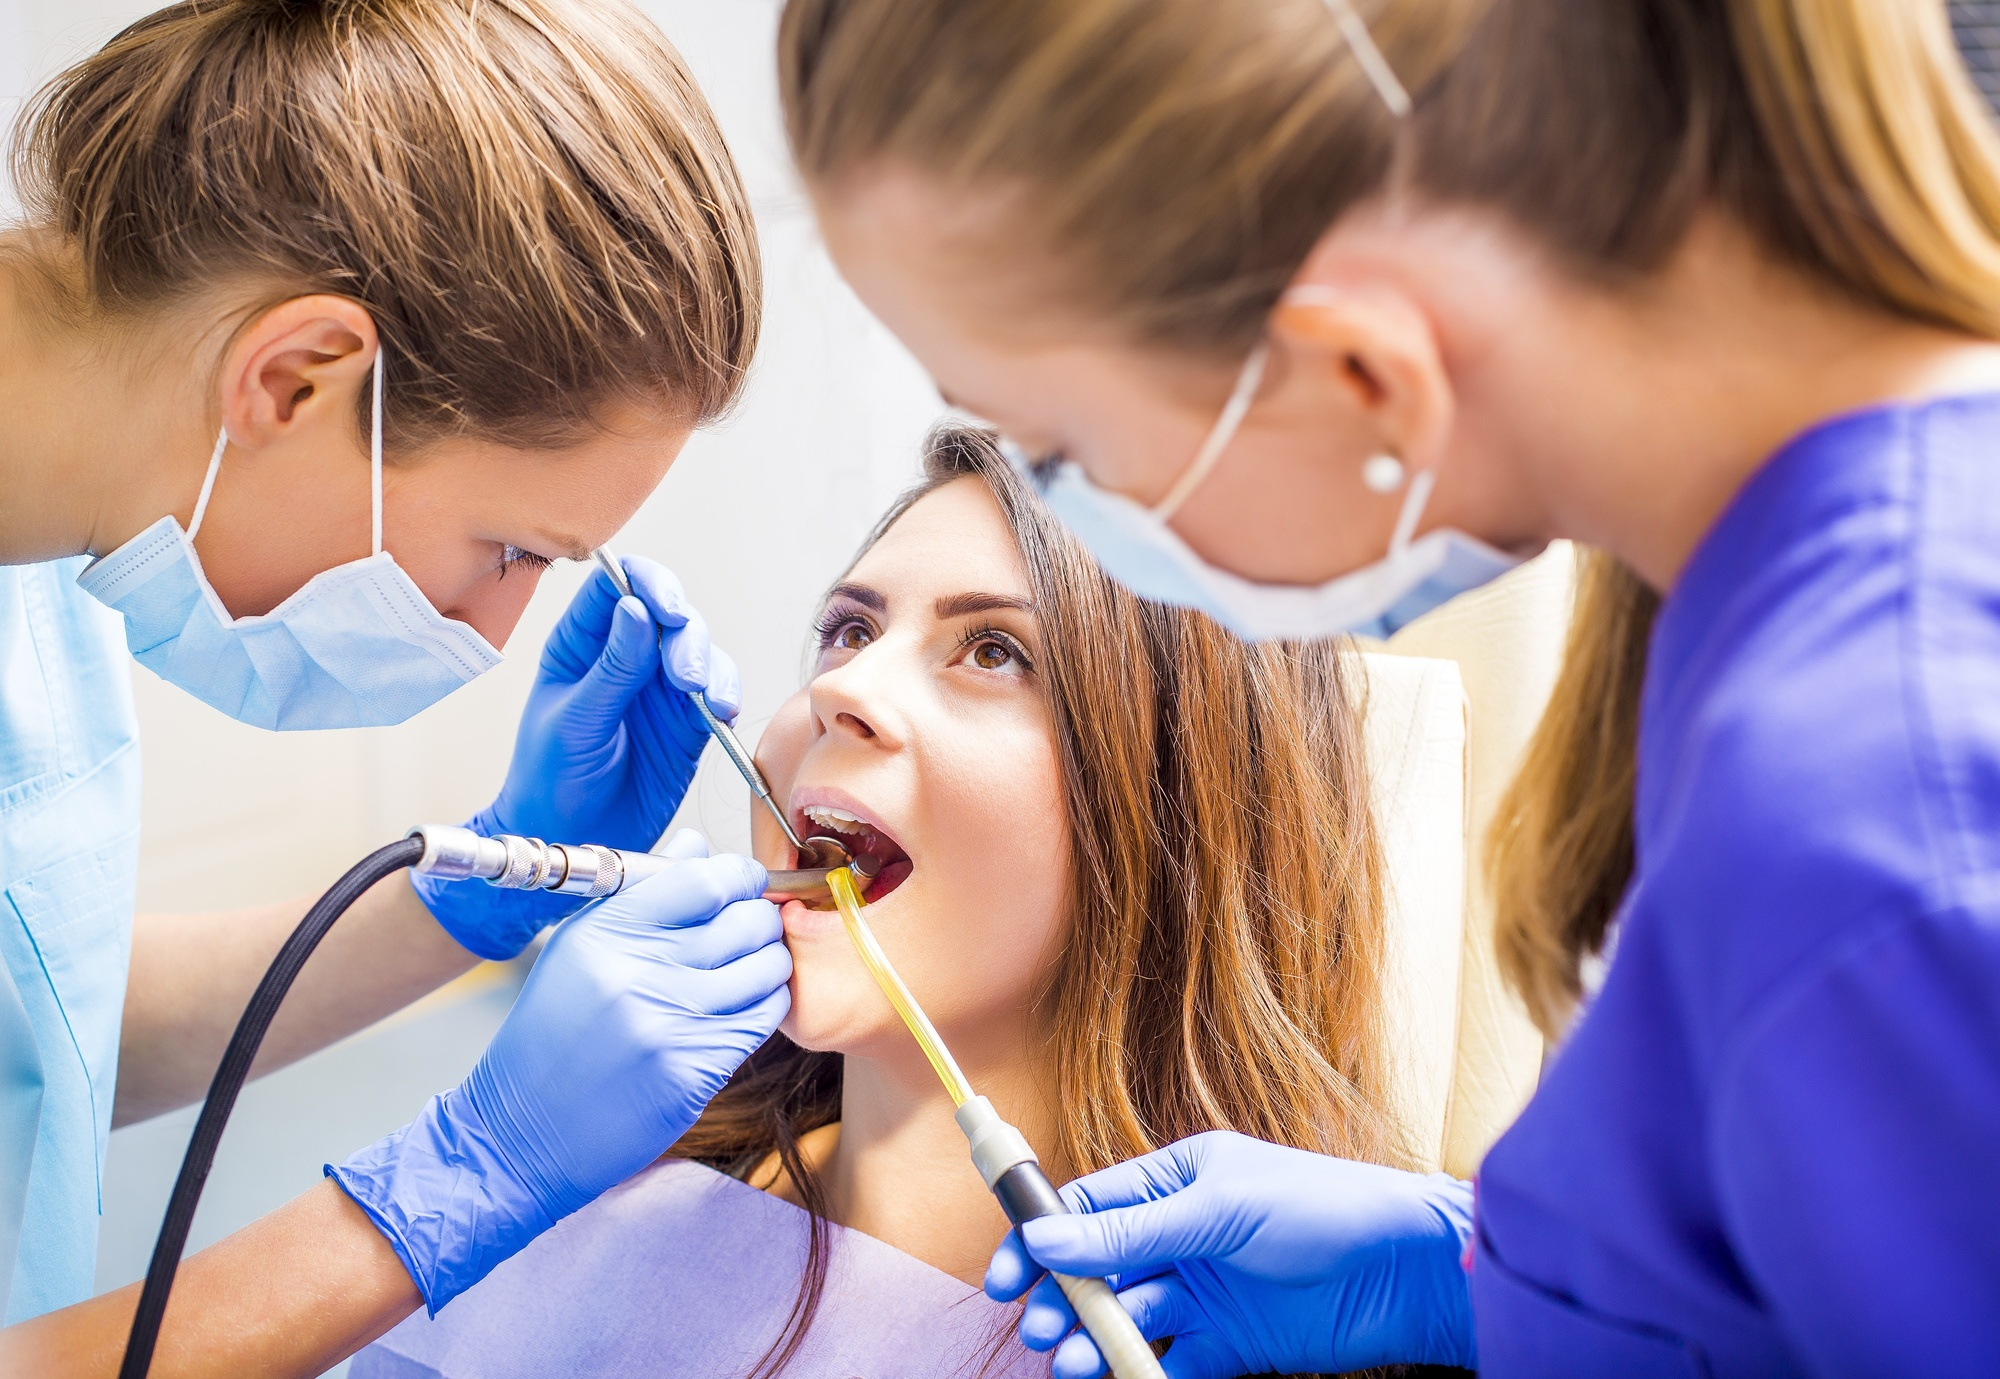 How to Choose the Best Dental Practice for You